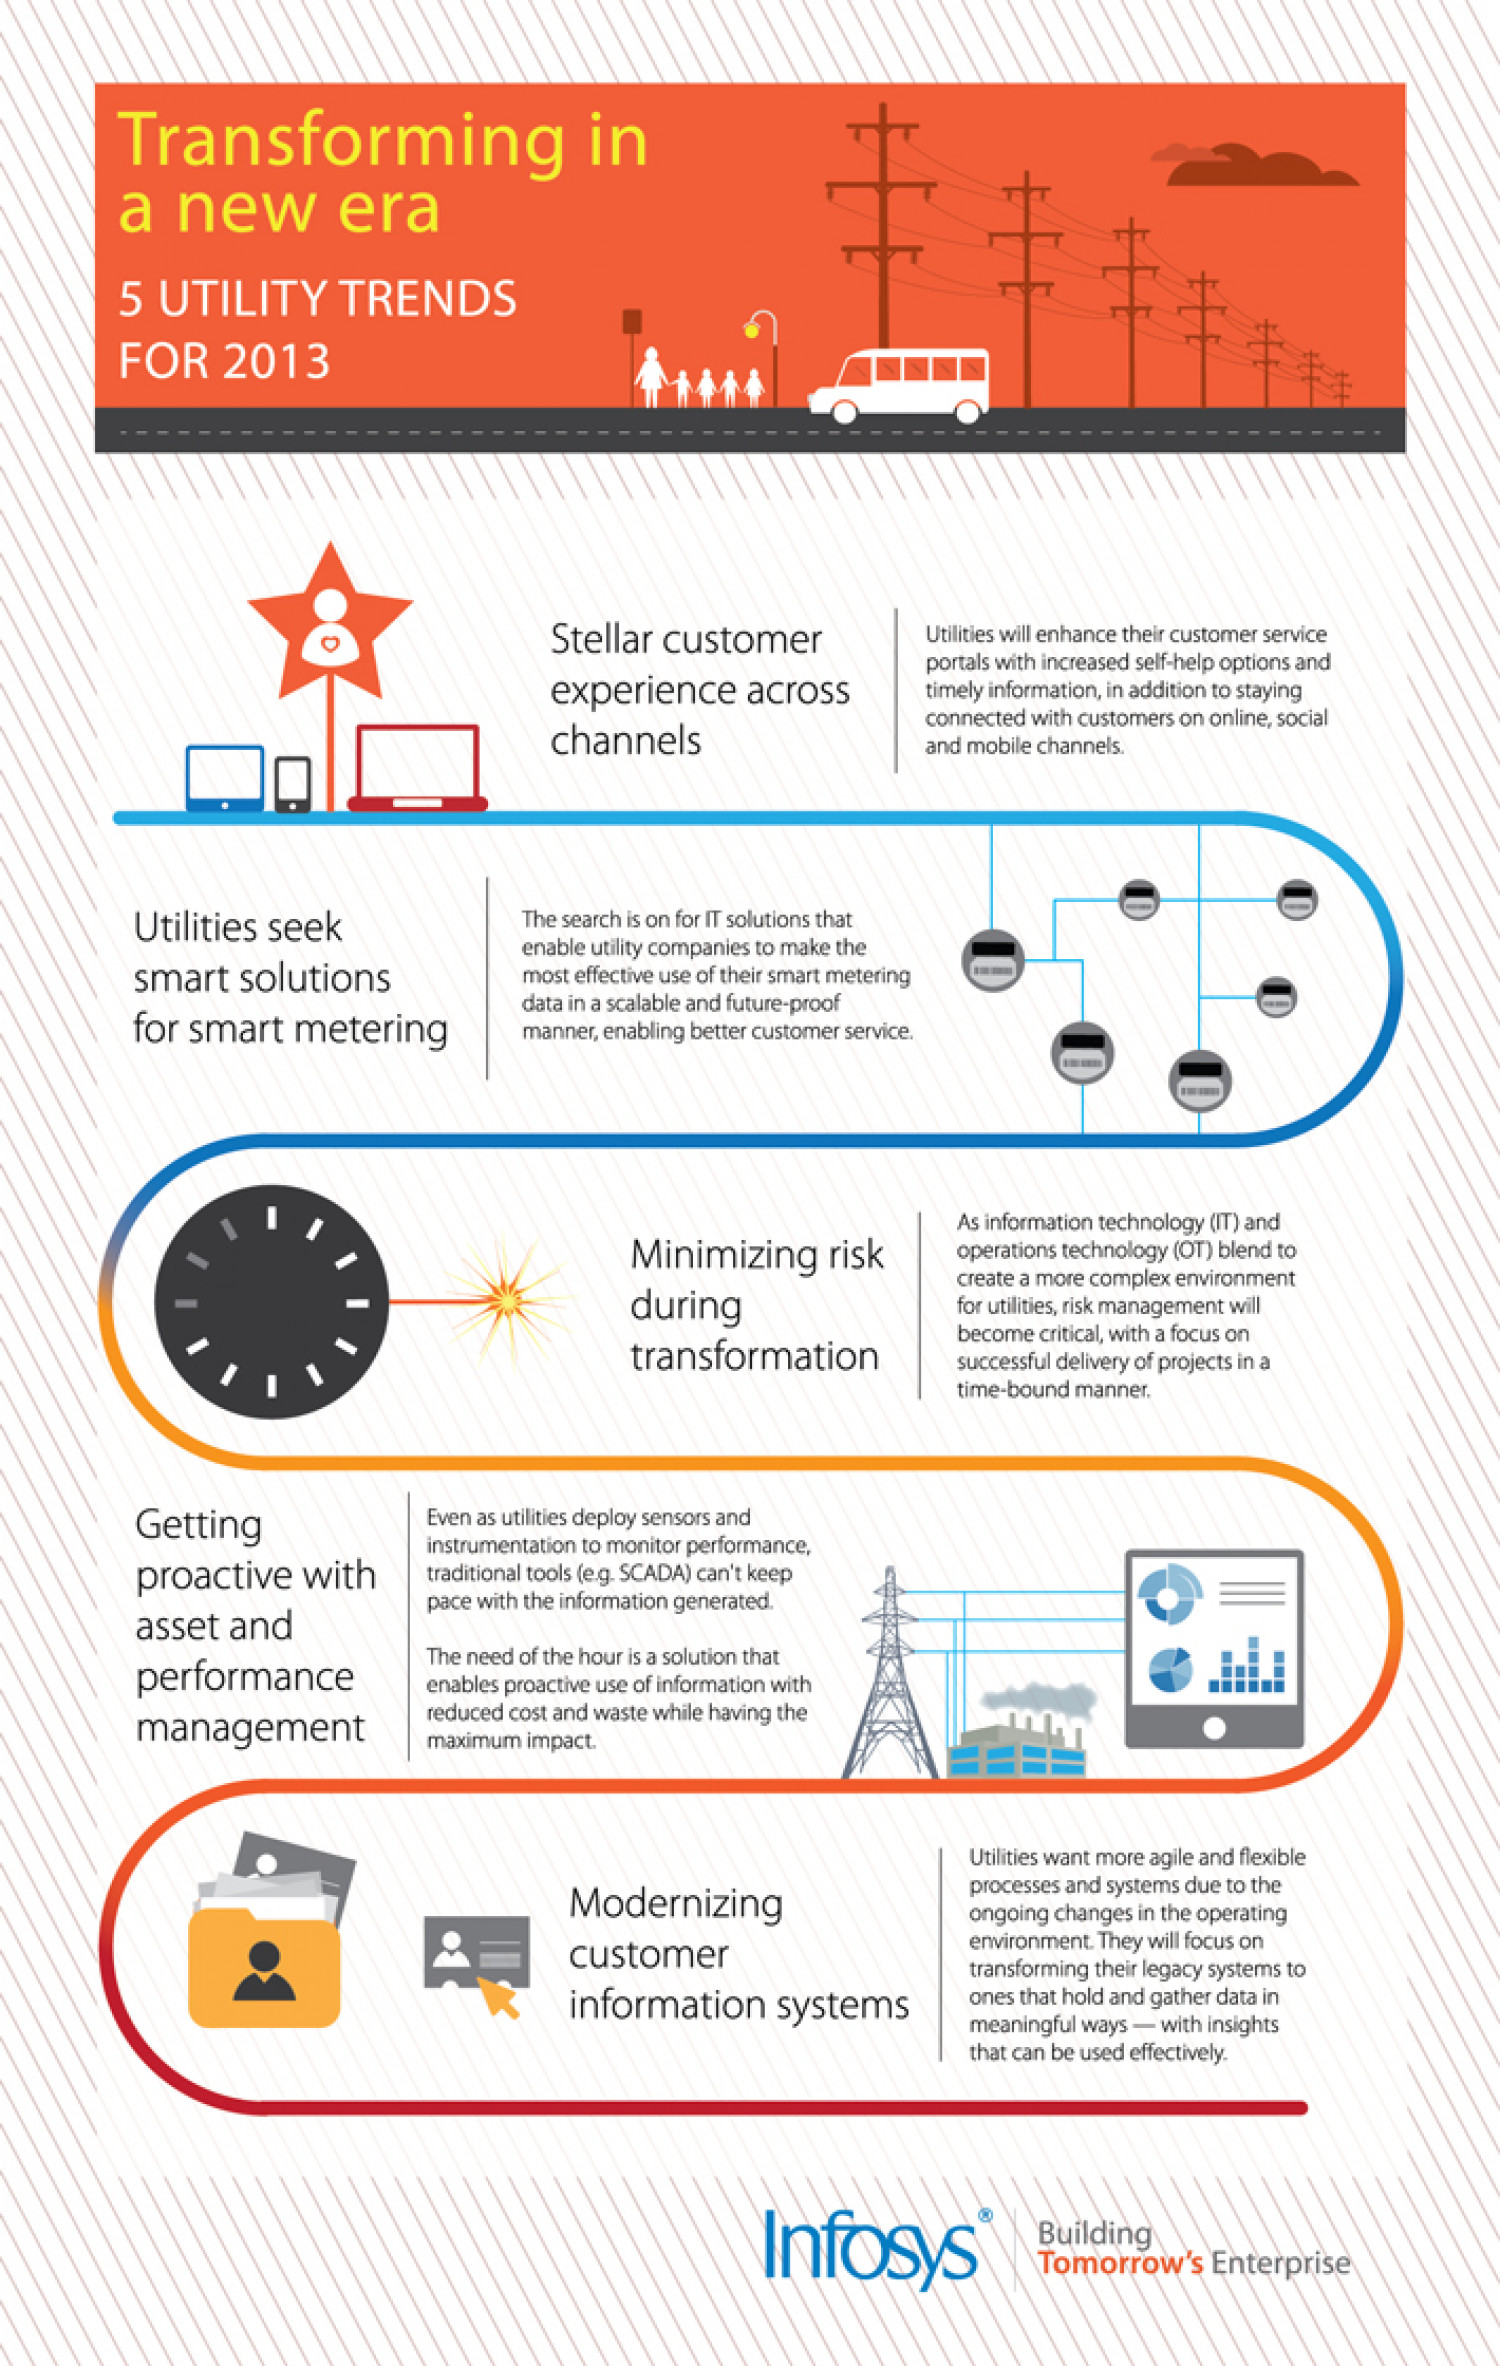 Utility Energy Industry Trends & Customer Experience Transformation Infographic